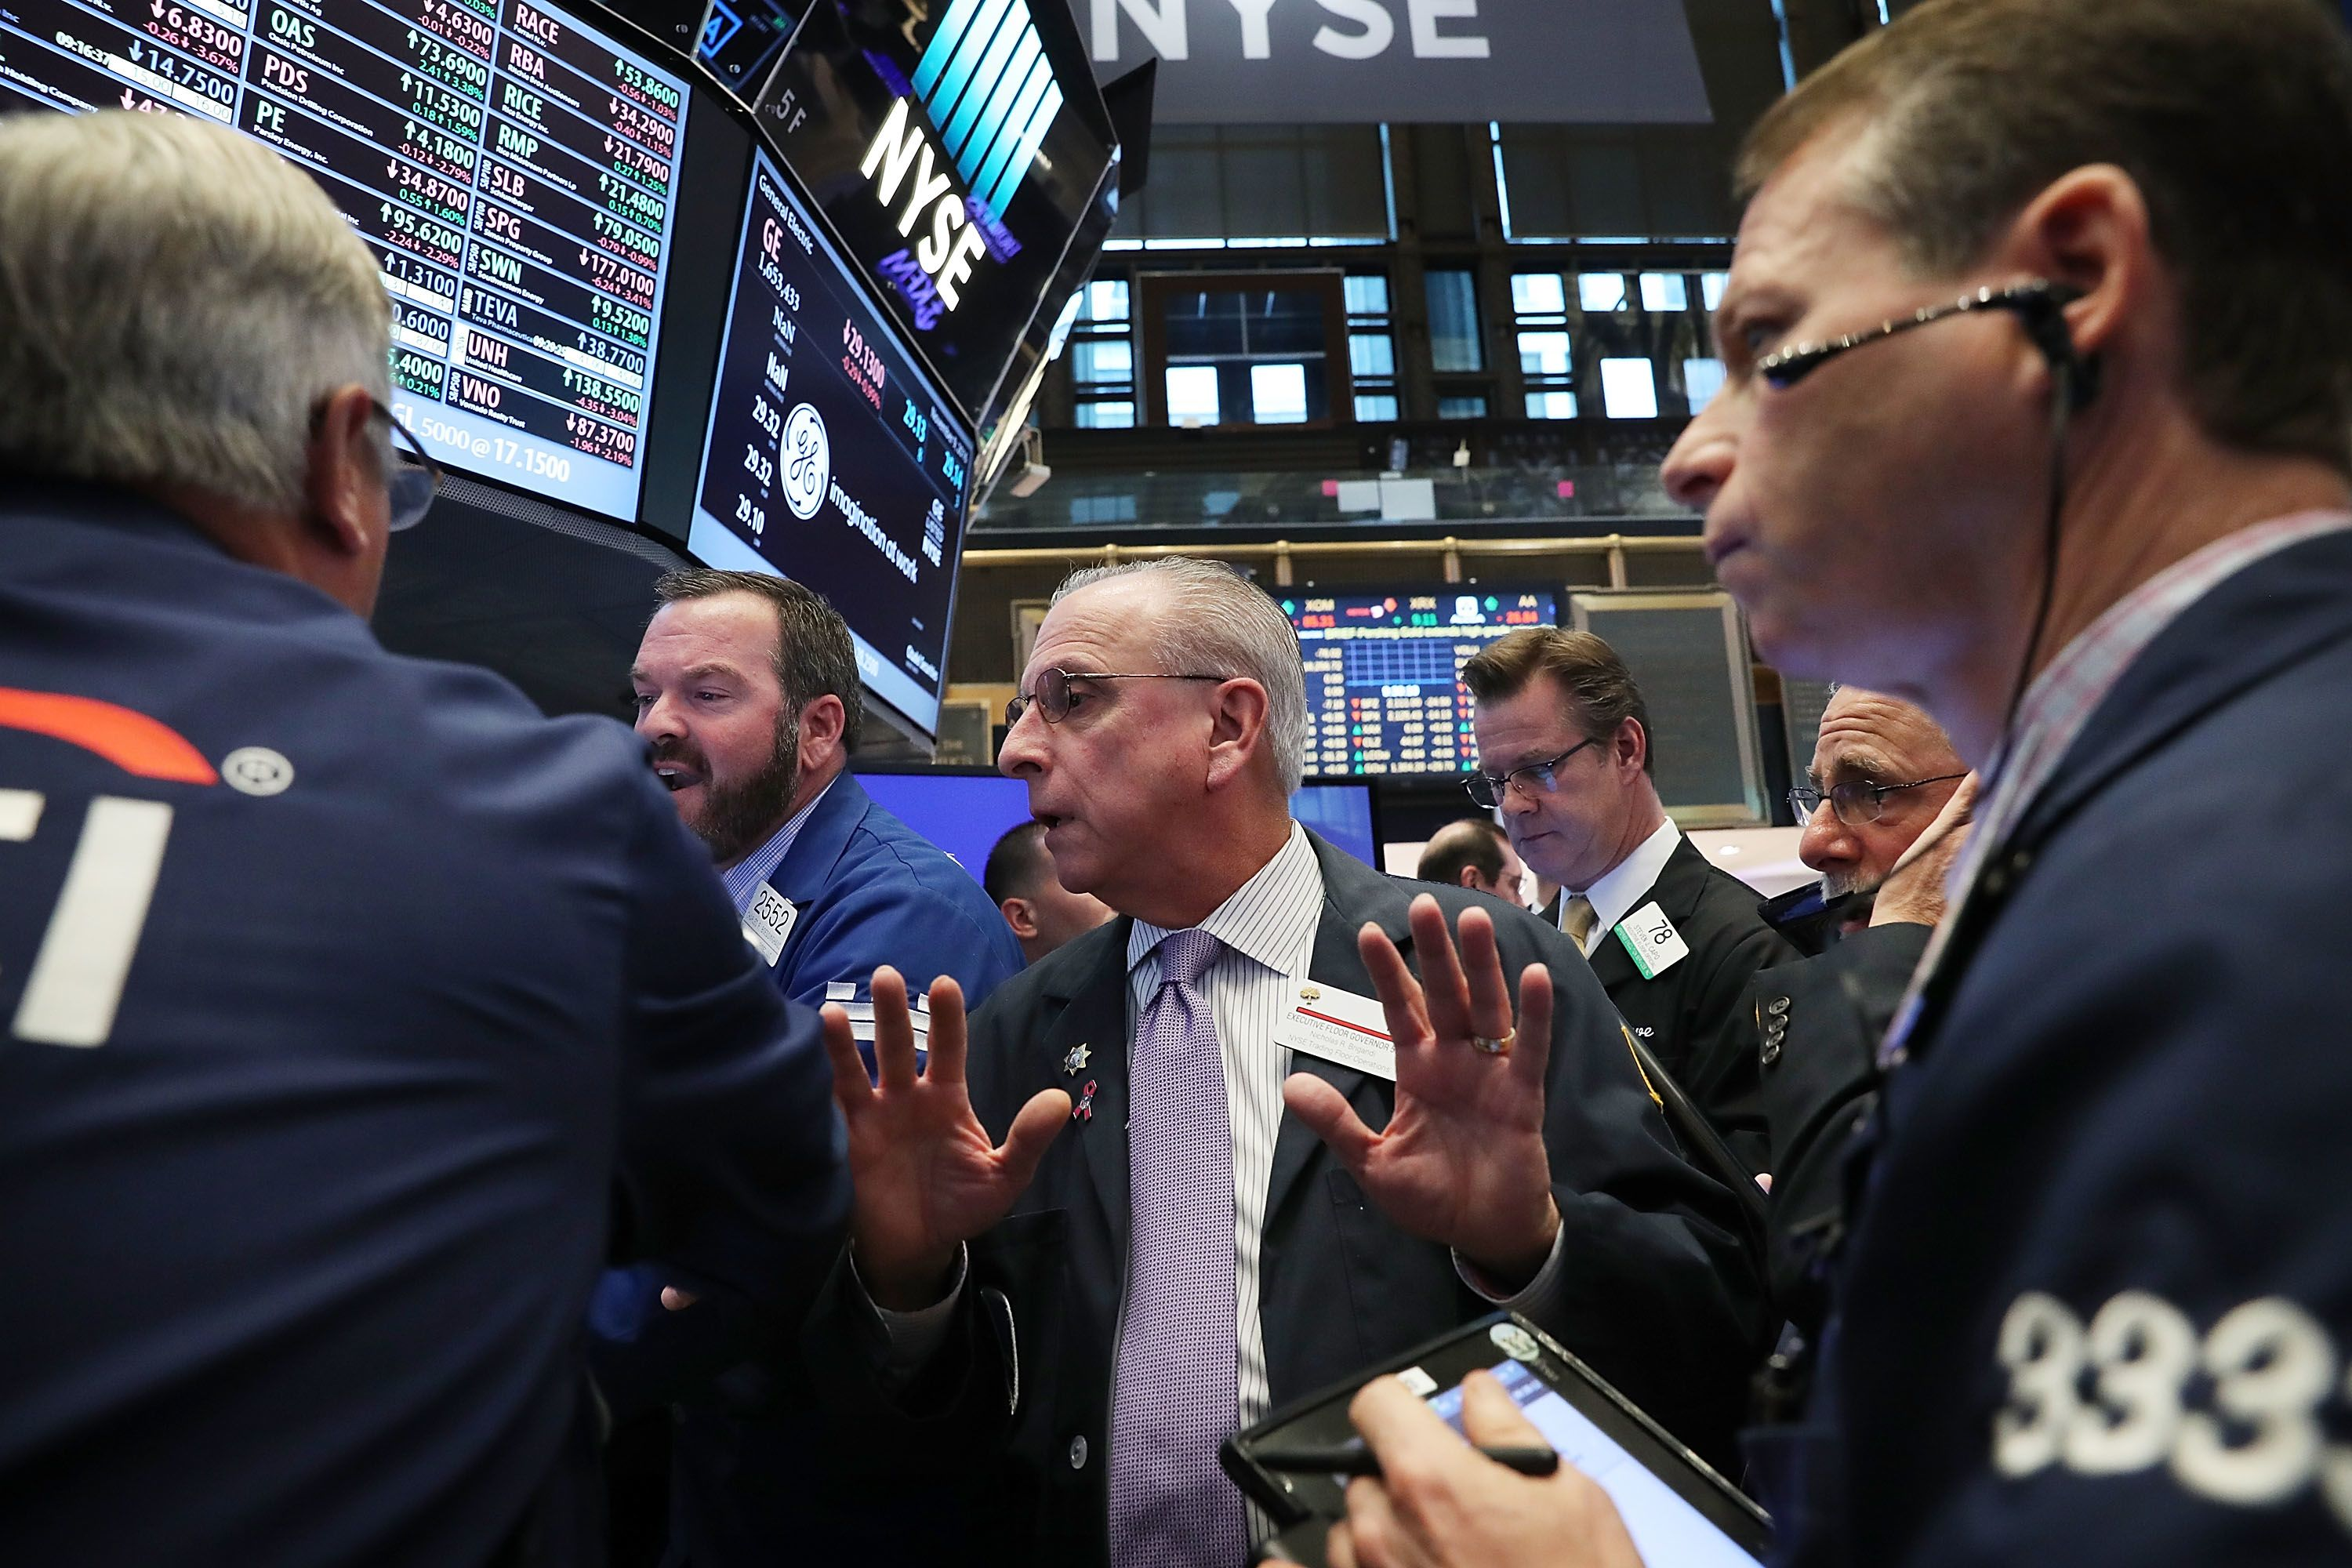 Stocks making the biggest moves midday: Target, Lowe's